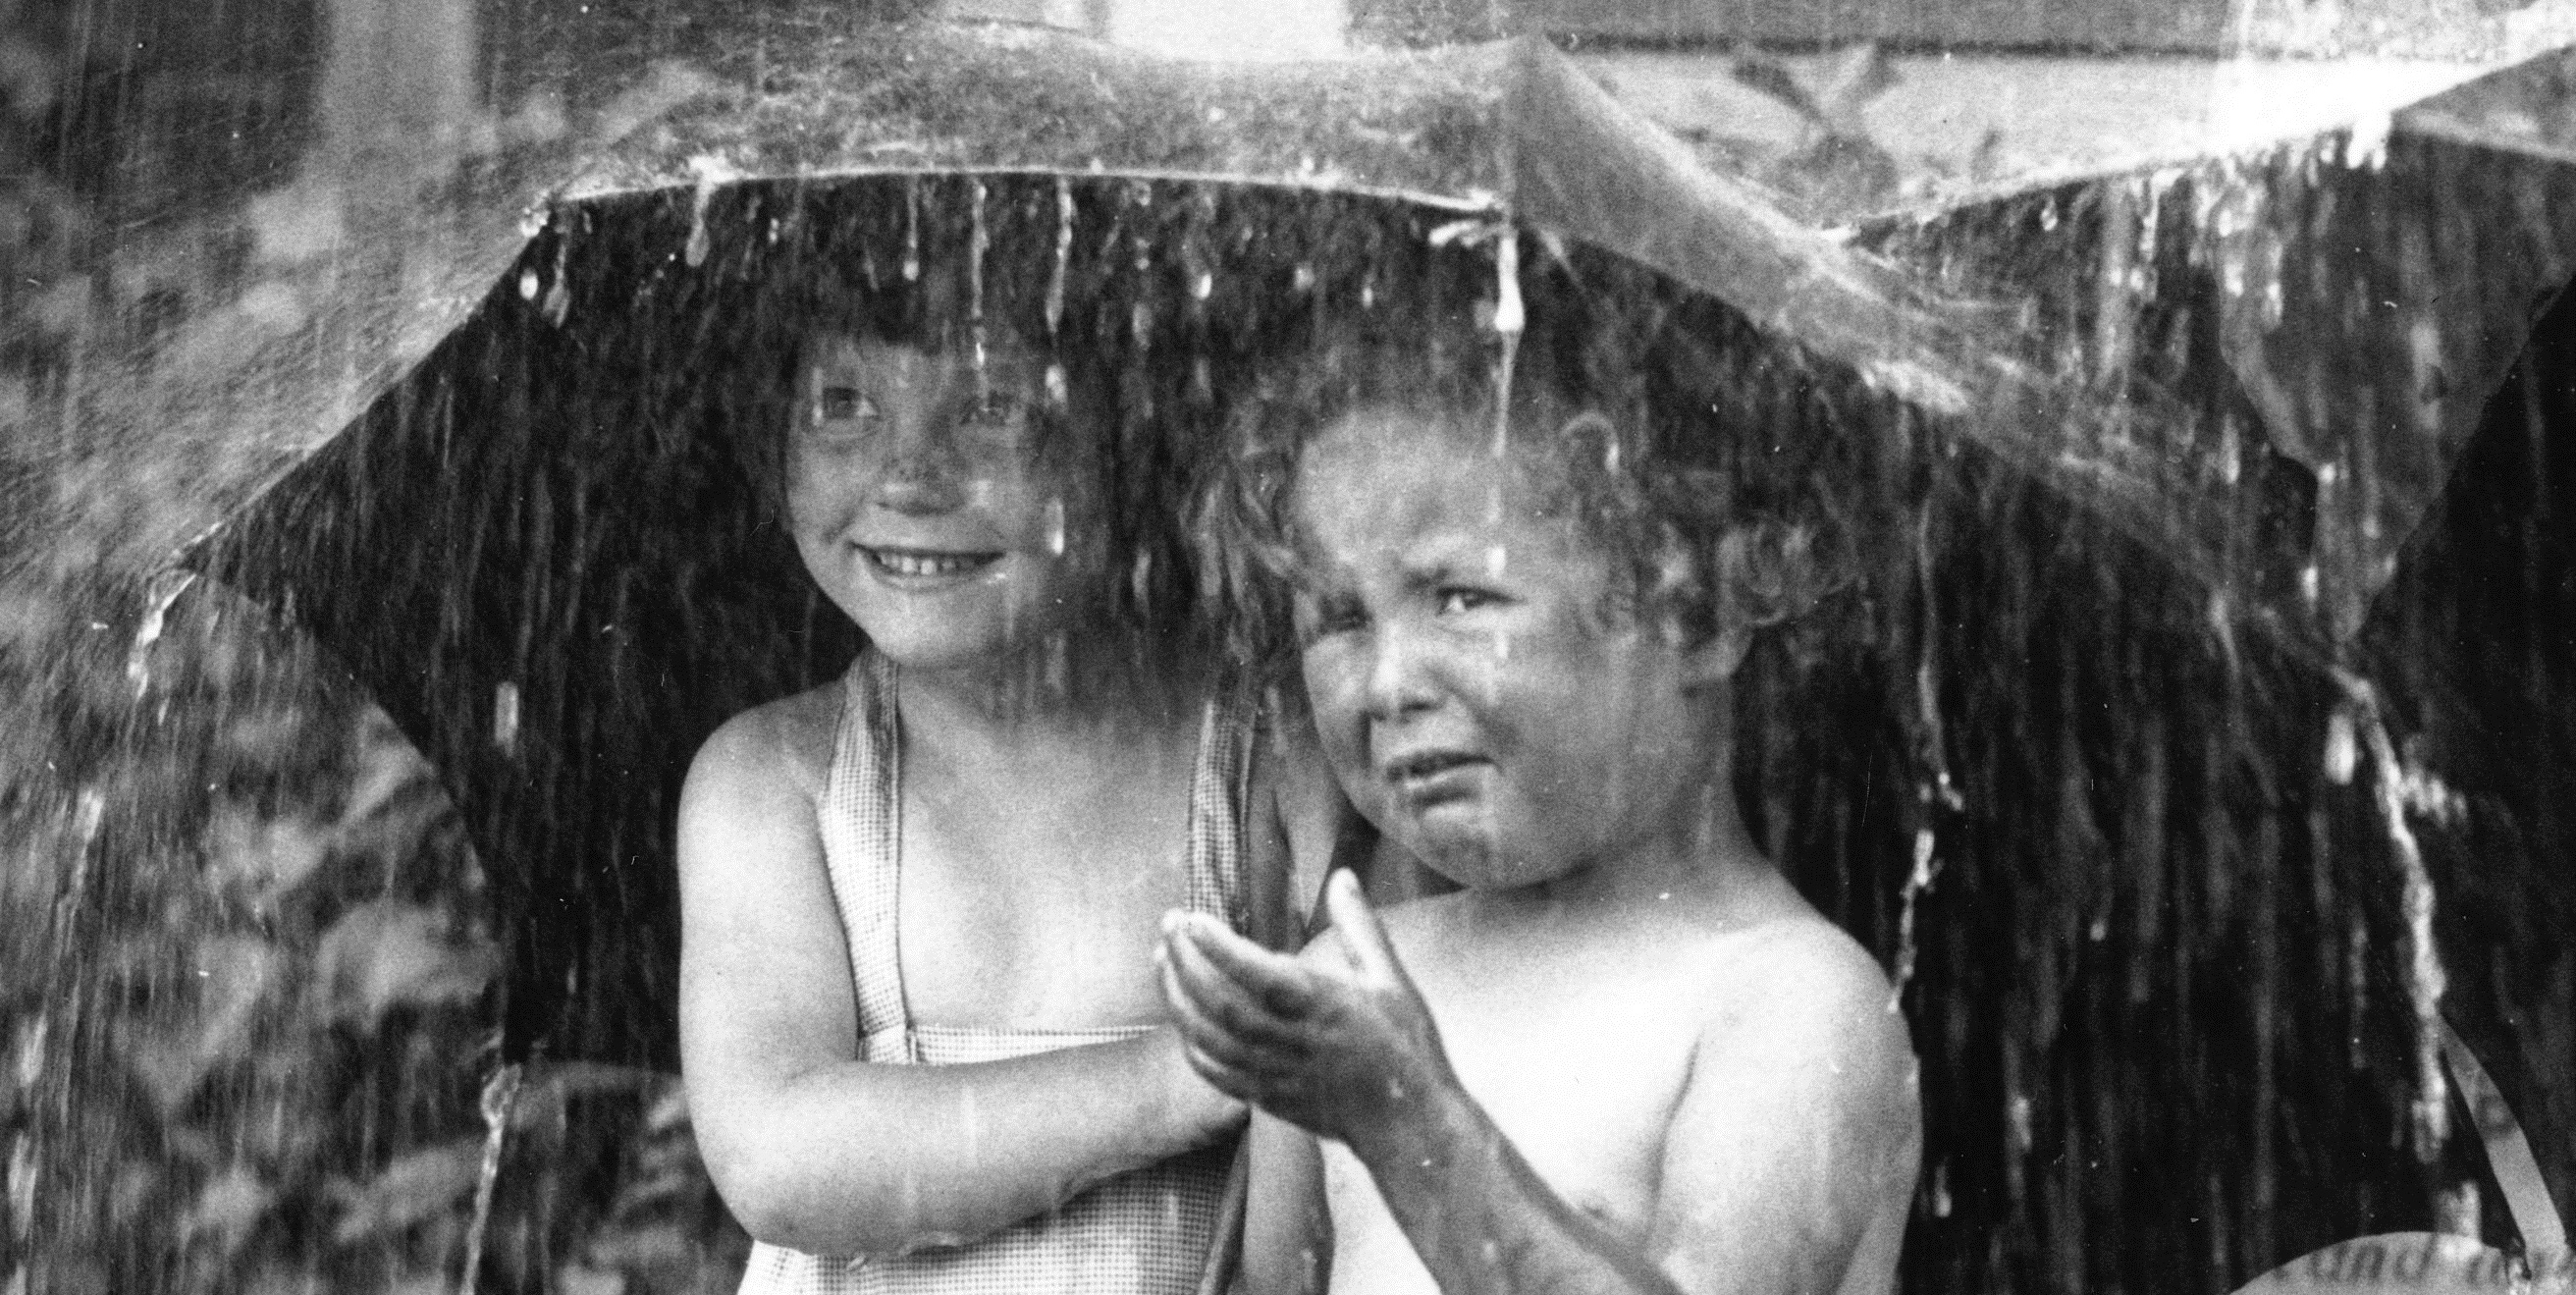 21st June 1934: Two young children at Dr Barnardo's sheltering under an umbrella from a garden shower. (Photo by Fox Photos/Getty Images)